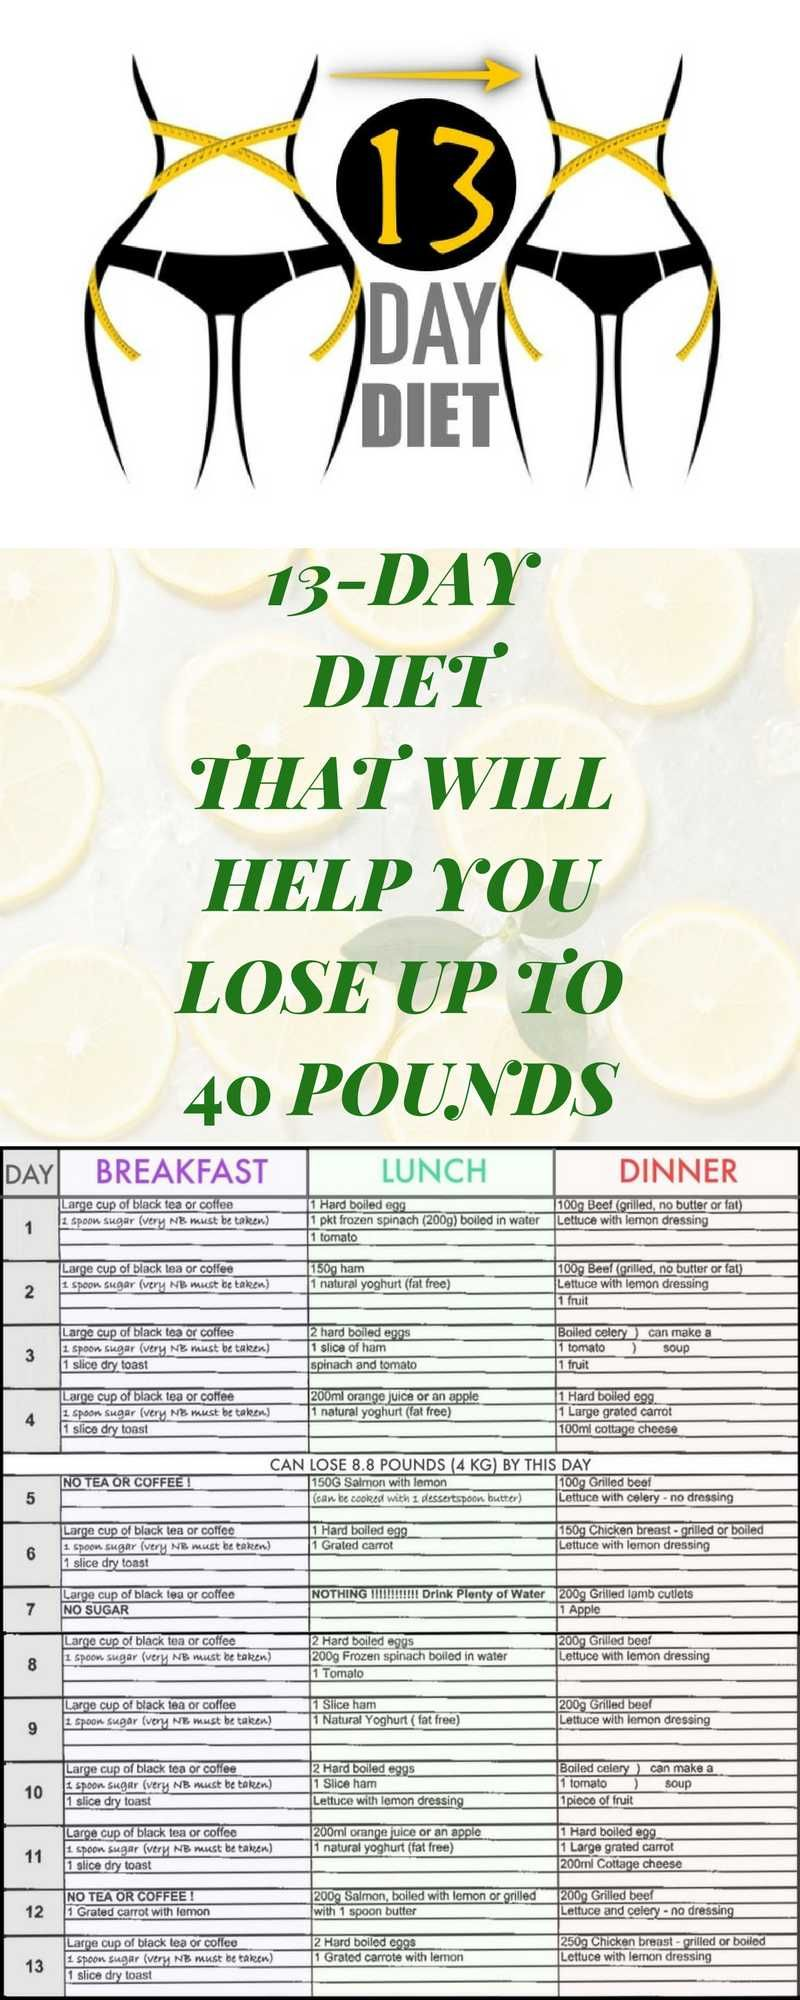 How to lose weight in 13 years